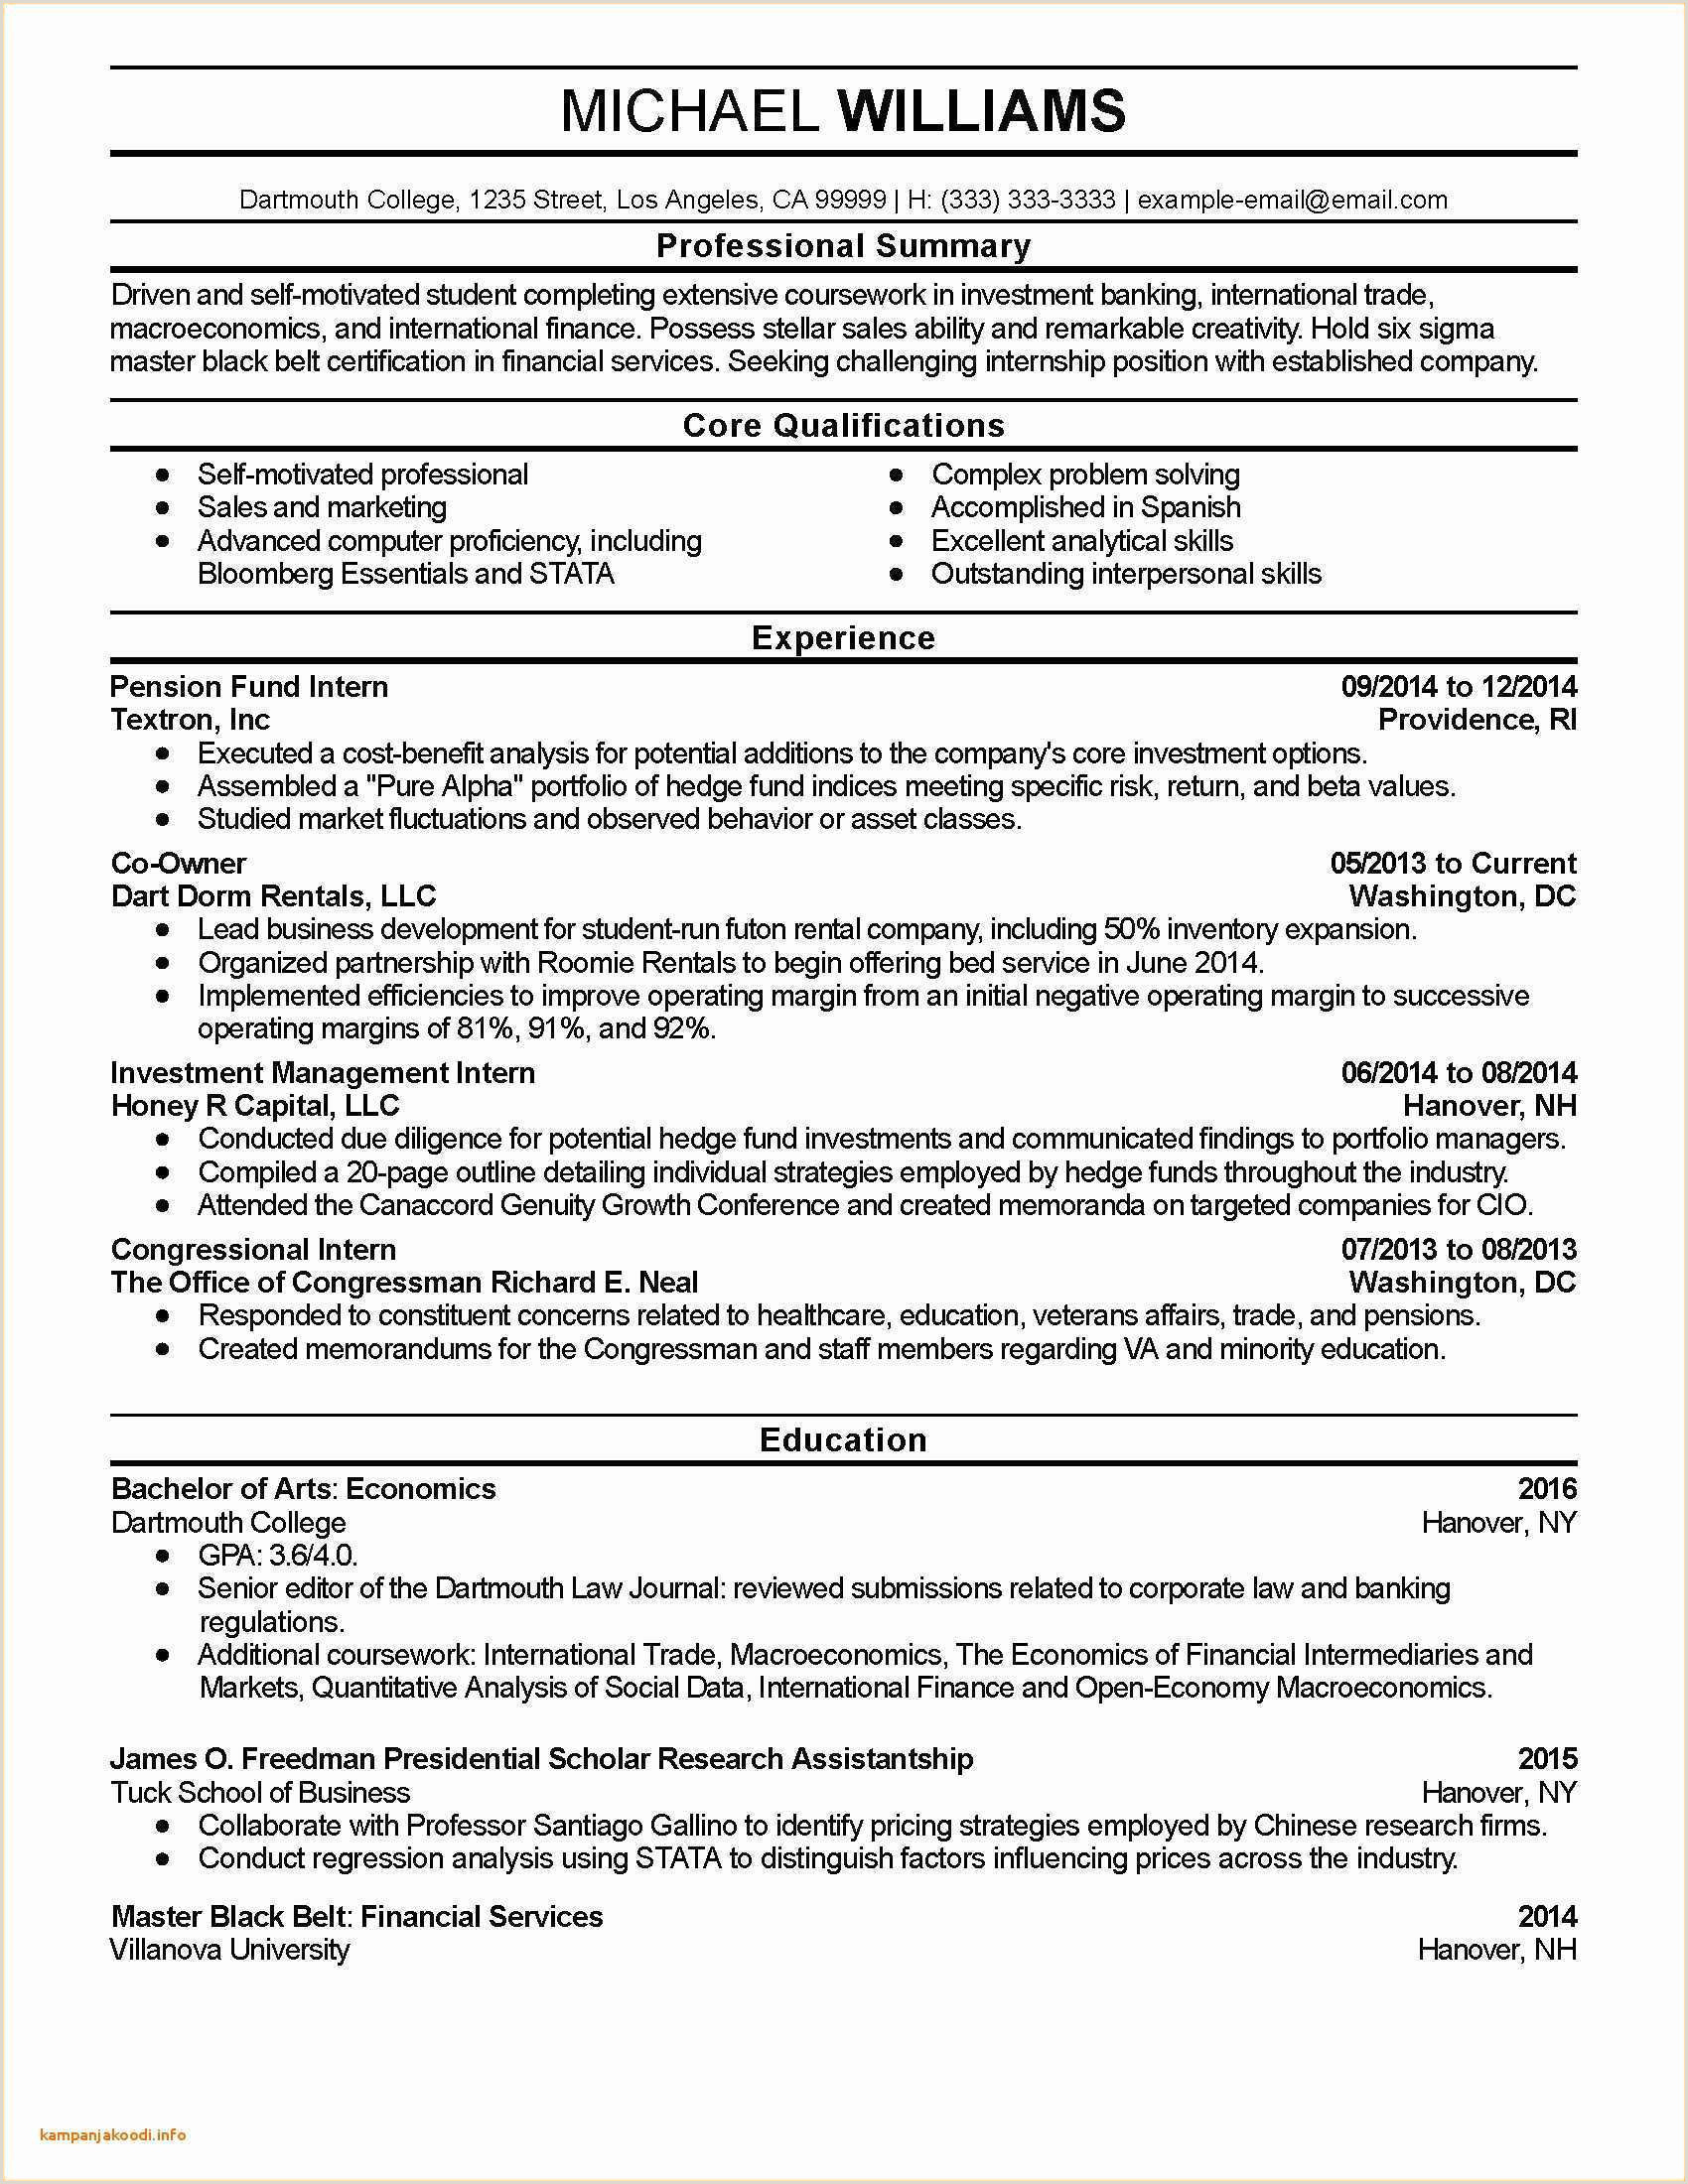 Elegant Bachelor social Work Resume Example – 50ger